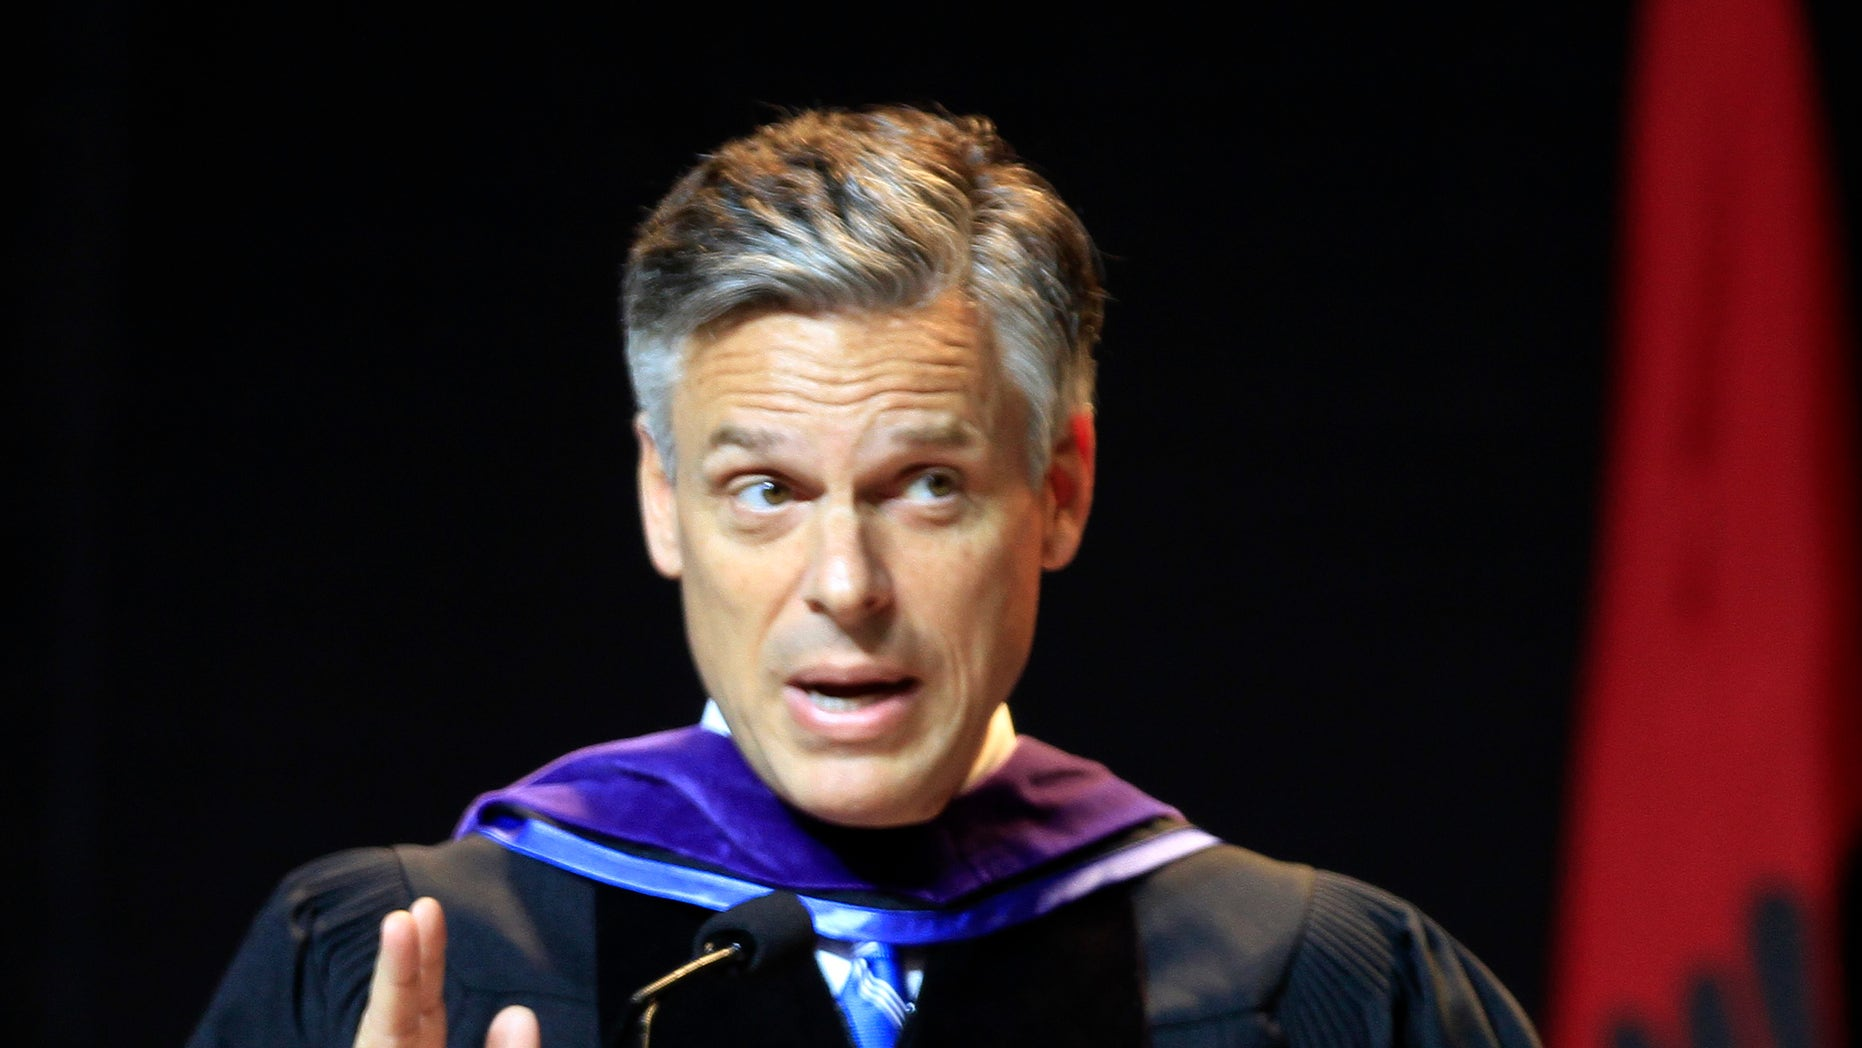 Possible 2012 presidential hopeful, former Republican Gov. Jon Huntsman, Jr., of Utah gives a commencement address to more than 1,000 students at Southern New Hampshire University, Saturday, May 21, 2011 in Manchester, N.H. (AP)